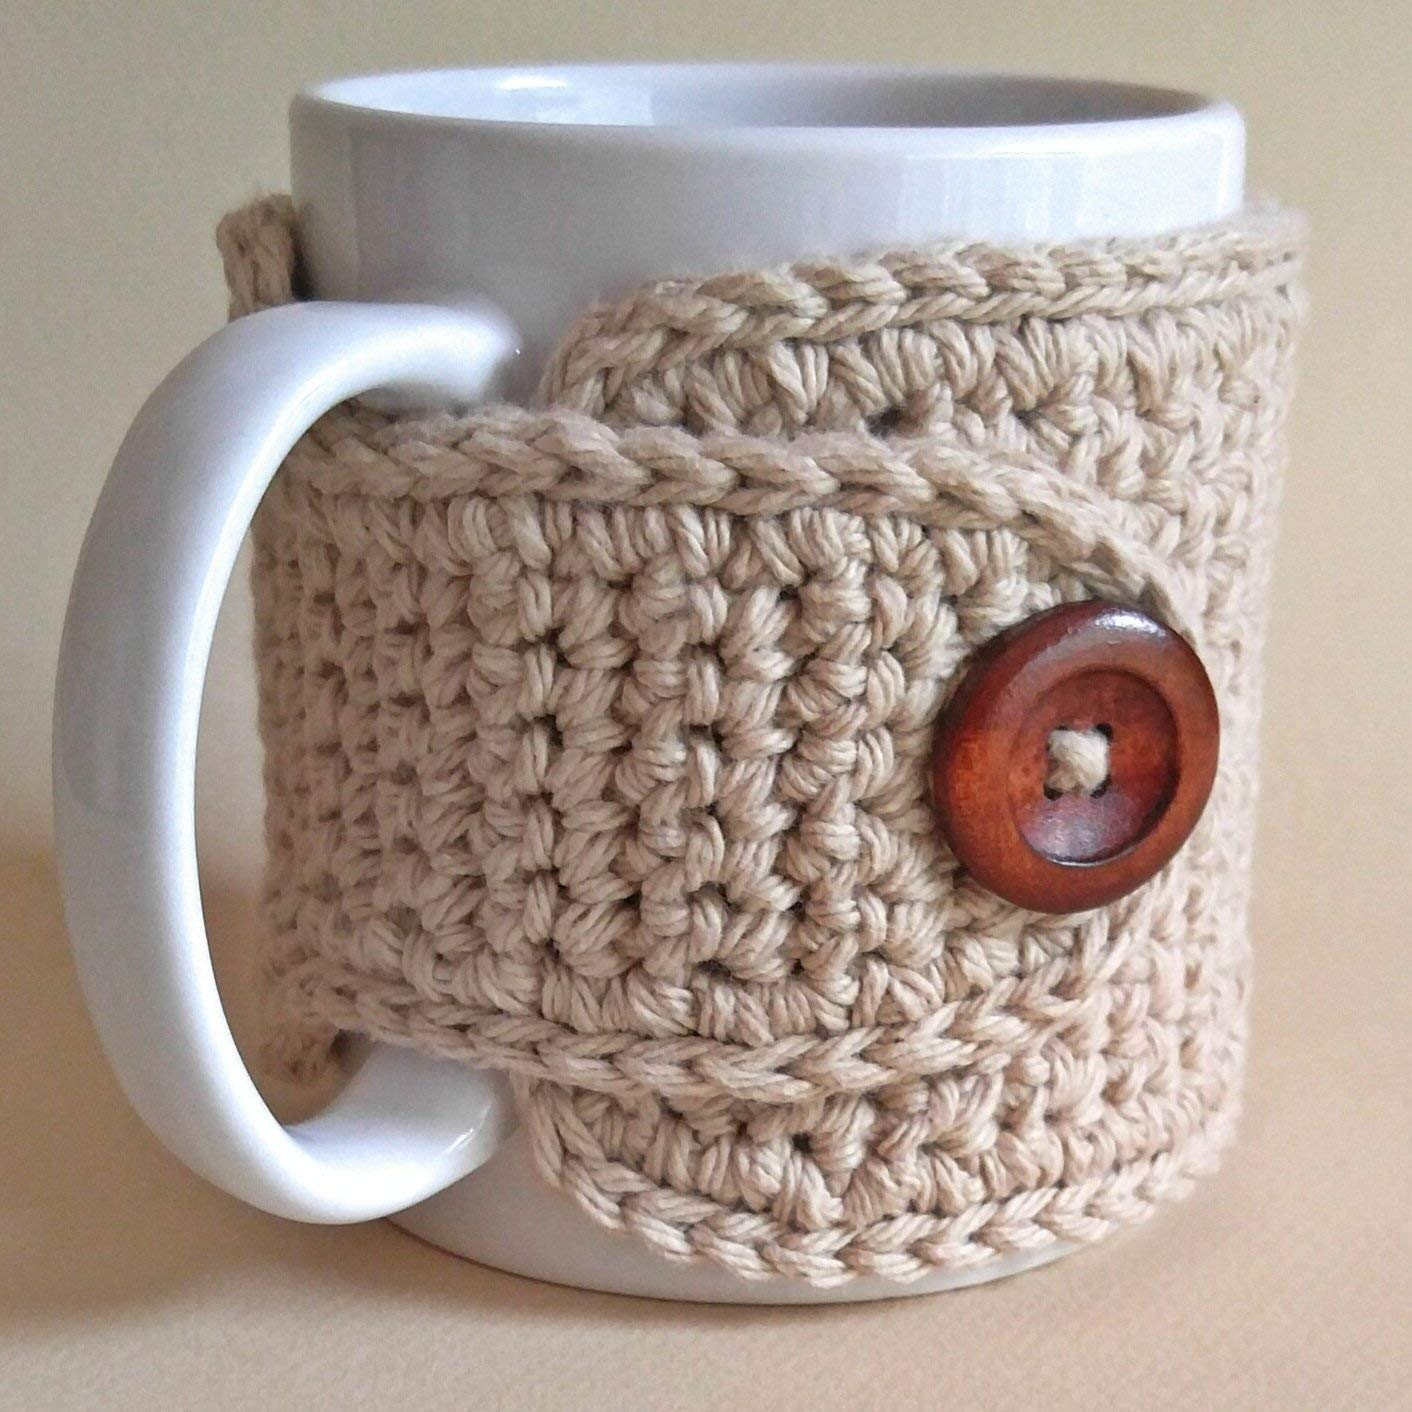 Amazon.com: Tea Mug Cozy Cotton Beige: Handmade